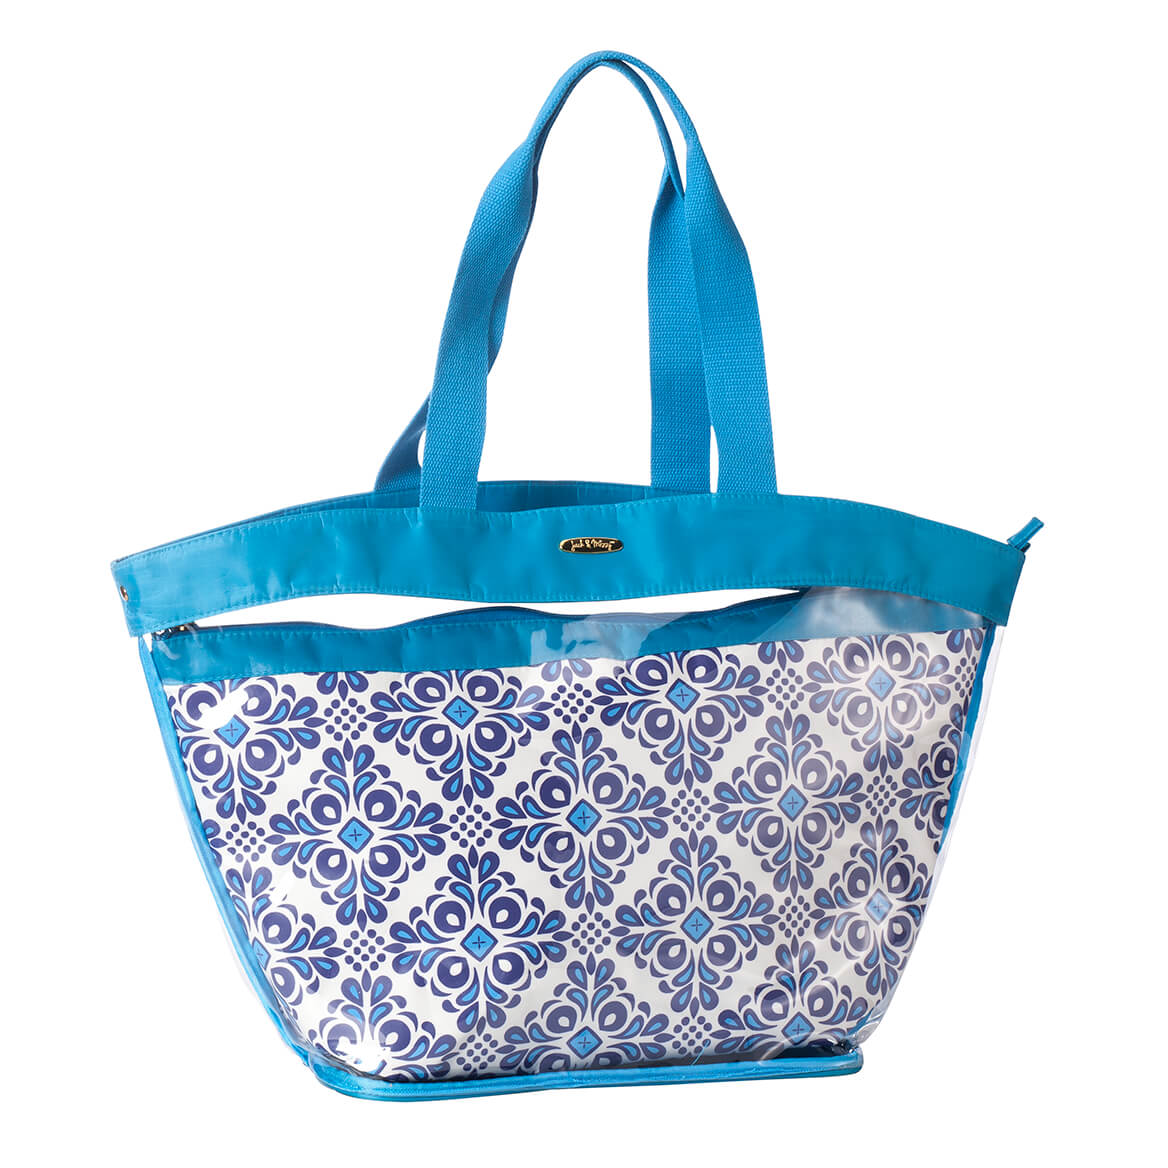 Jack & Missy™ 2-in-1 Blue Tote Bag-365846